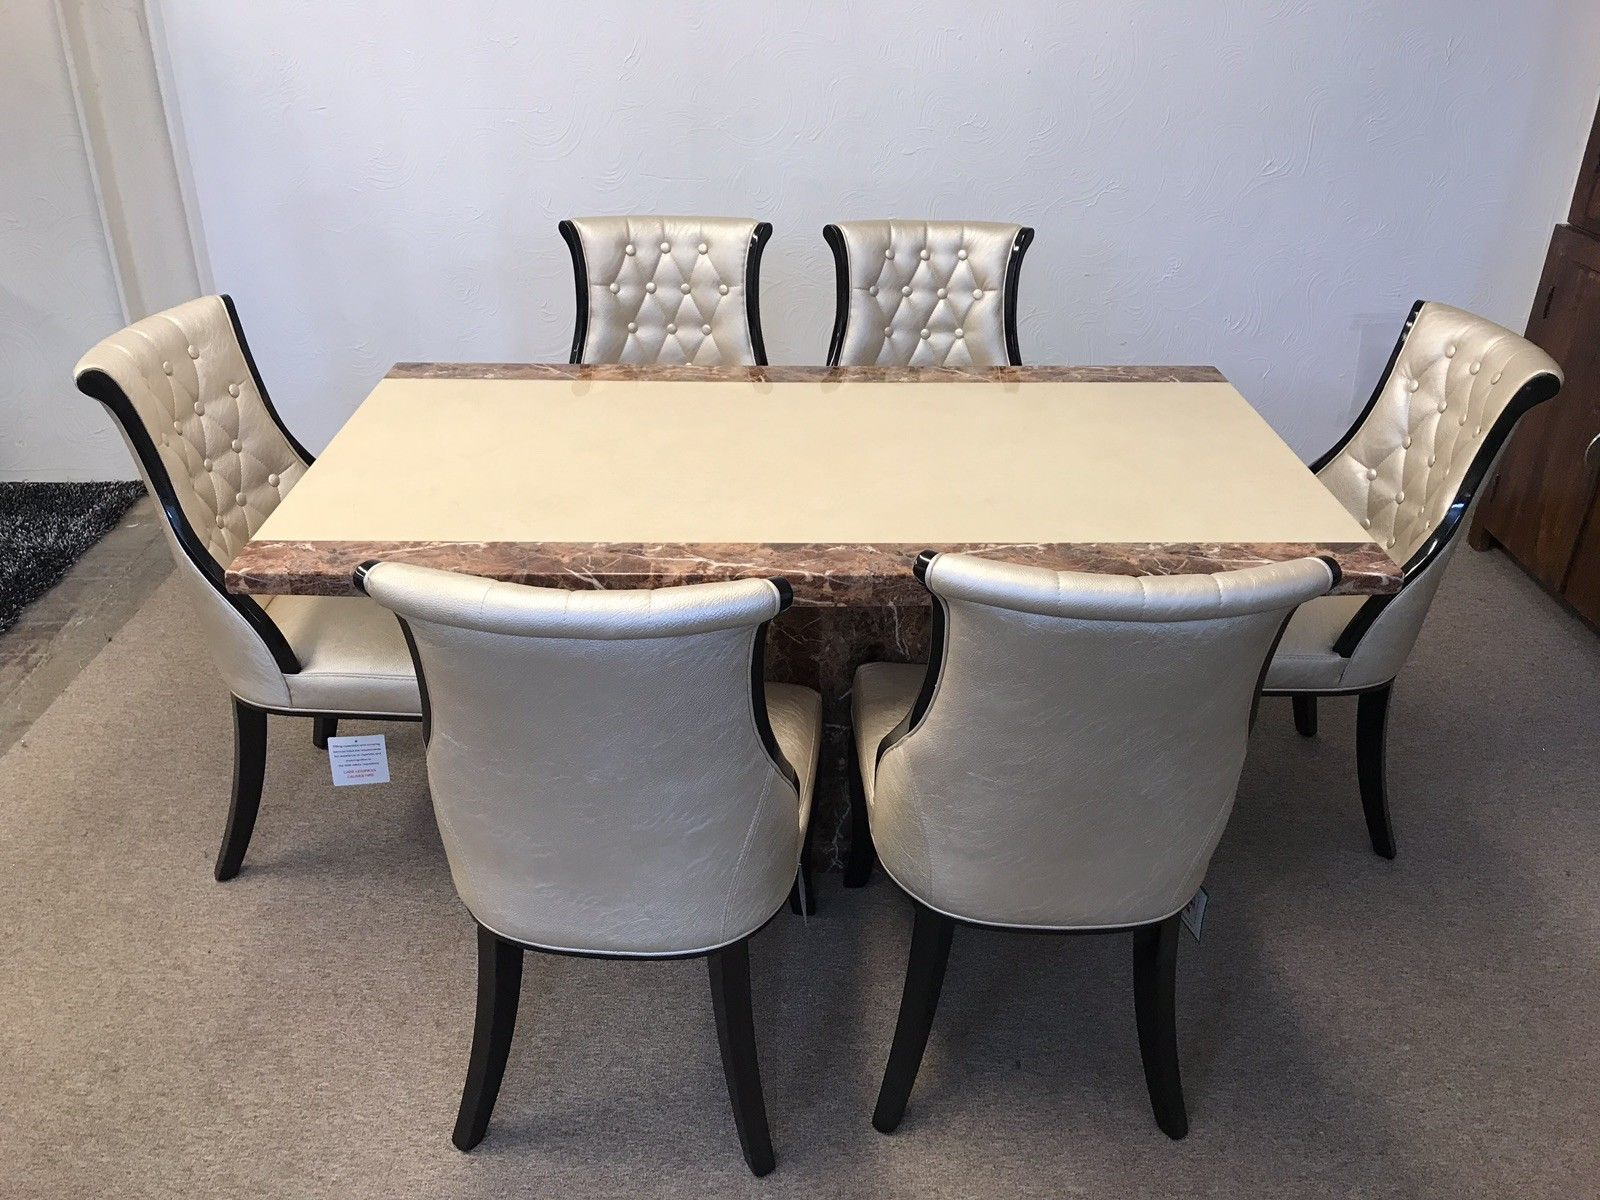 Marble Dining Table And 6 Chairs: Monaco 180cm Marble Dining Table And 6 Gold Curveback